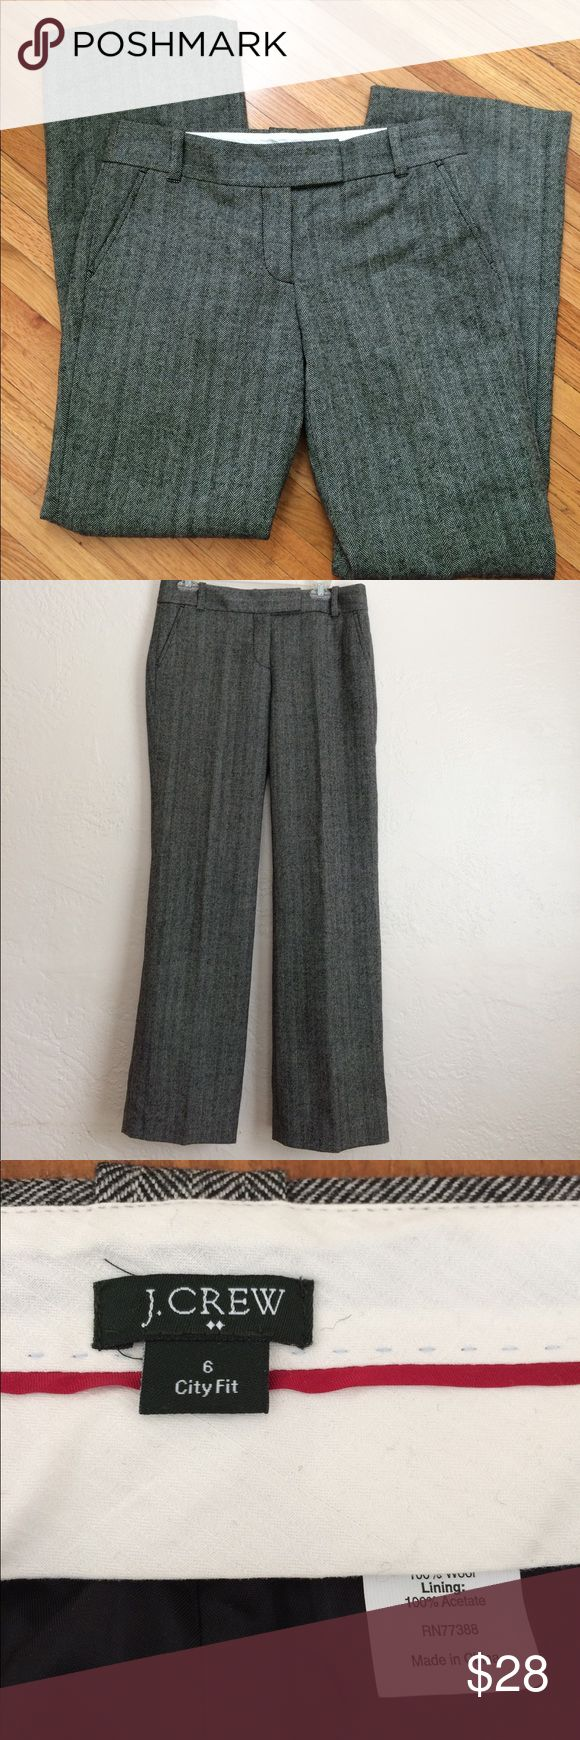 """J.Crew herring bone lined wool city fit NWOT Medium rise city fit with flared leg, side pockets, belt loops, button back pockets.  Nice and warm 100% wool with acetate lining.  Dry clean.  Measurements:  waist 33"""", front rise 9"""", back rise 15"""", across thigh 12"""", inseam 32"""". J. Crew Pants Trousers"""